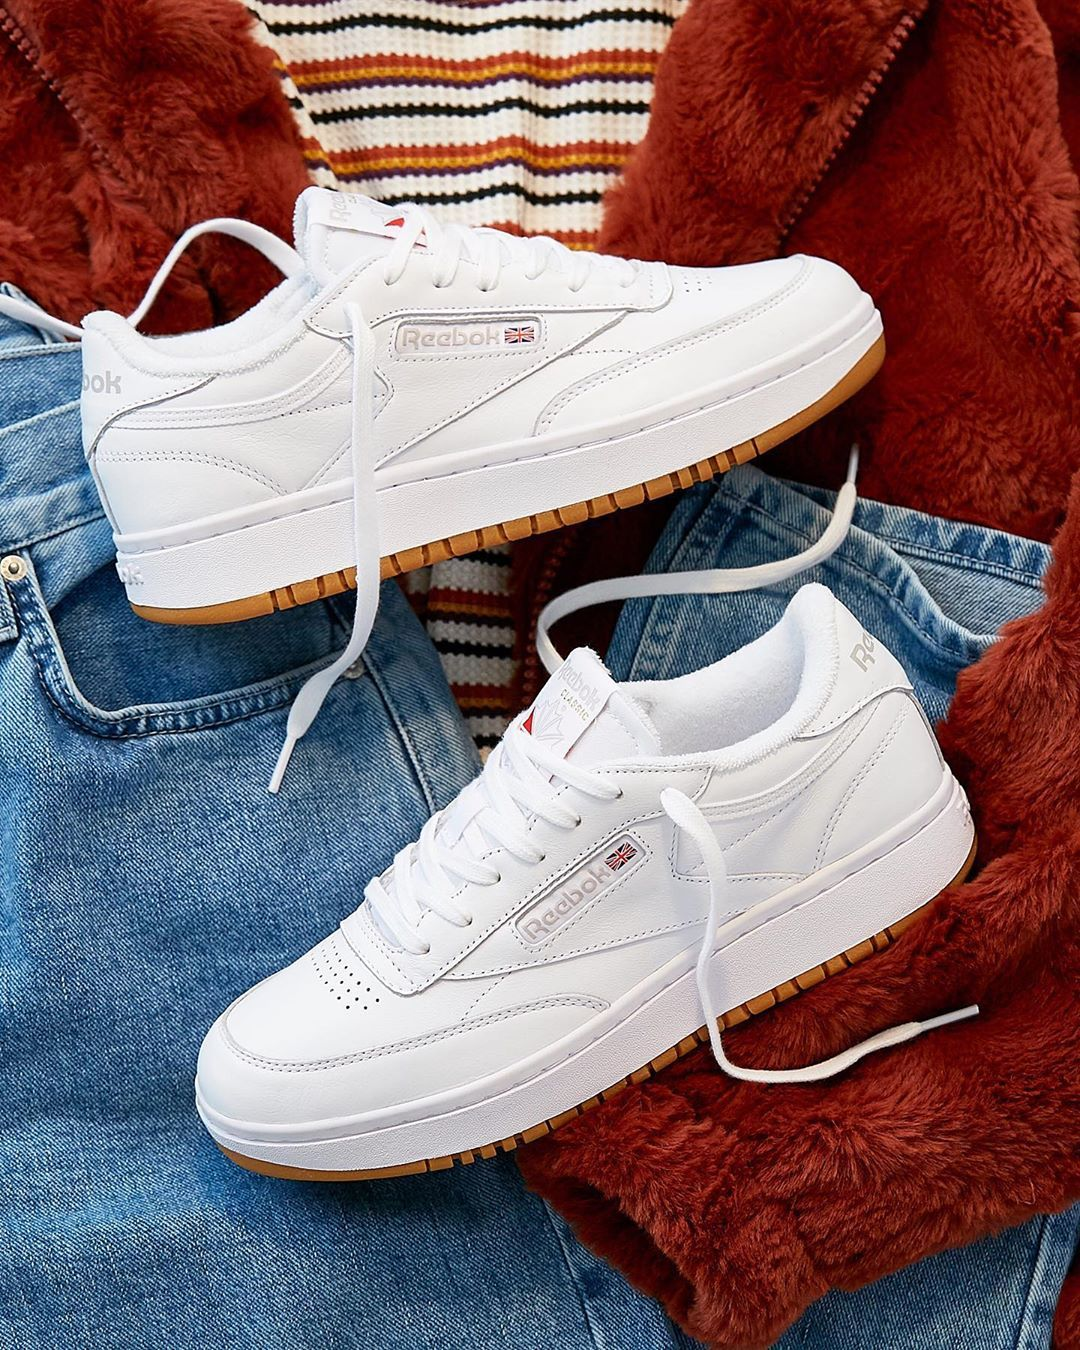 Introducing the @Reebok Club C Double